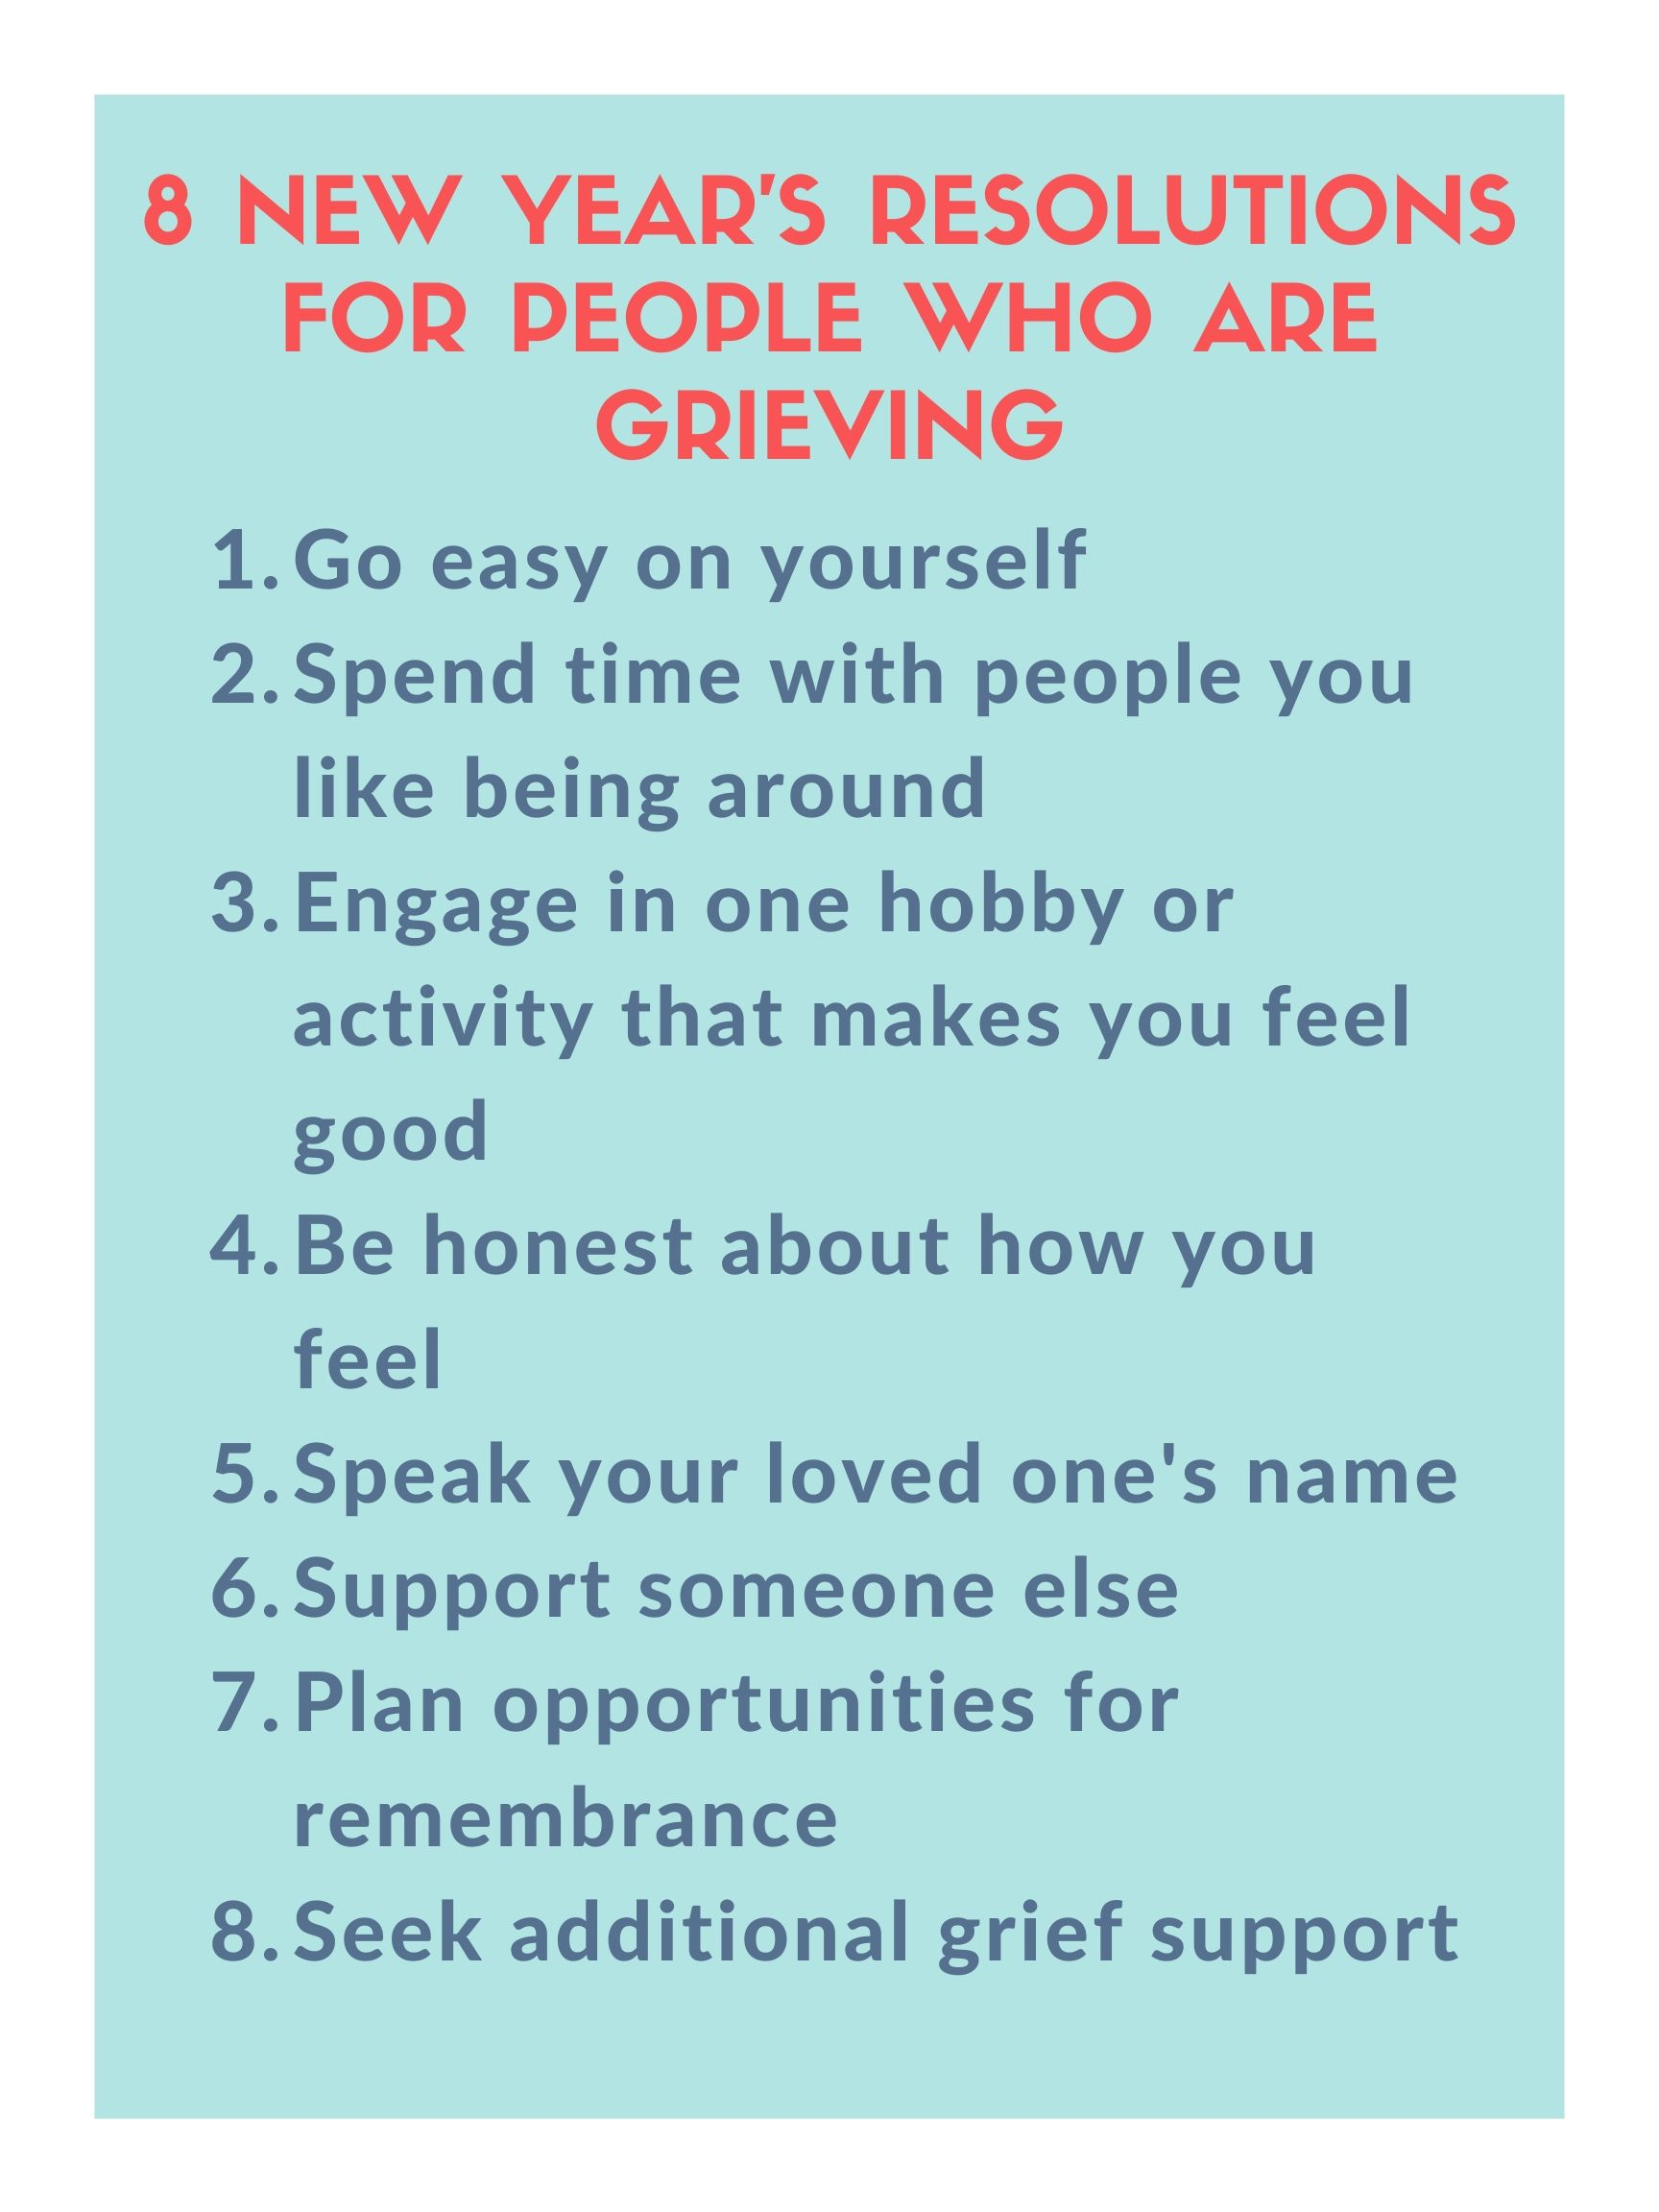 New Year's Resolutions for People who are Grieving